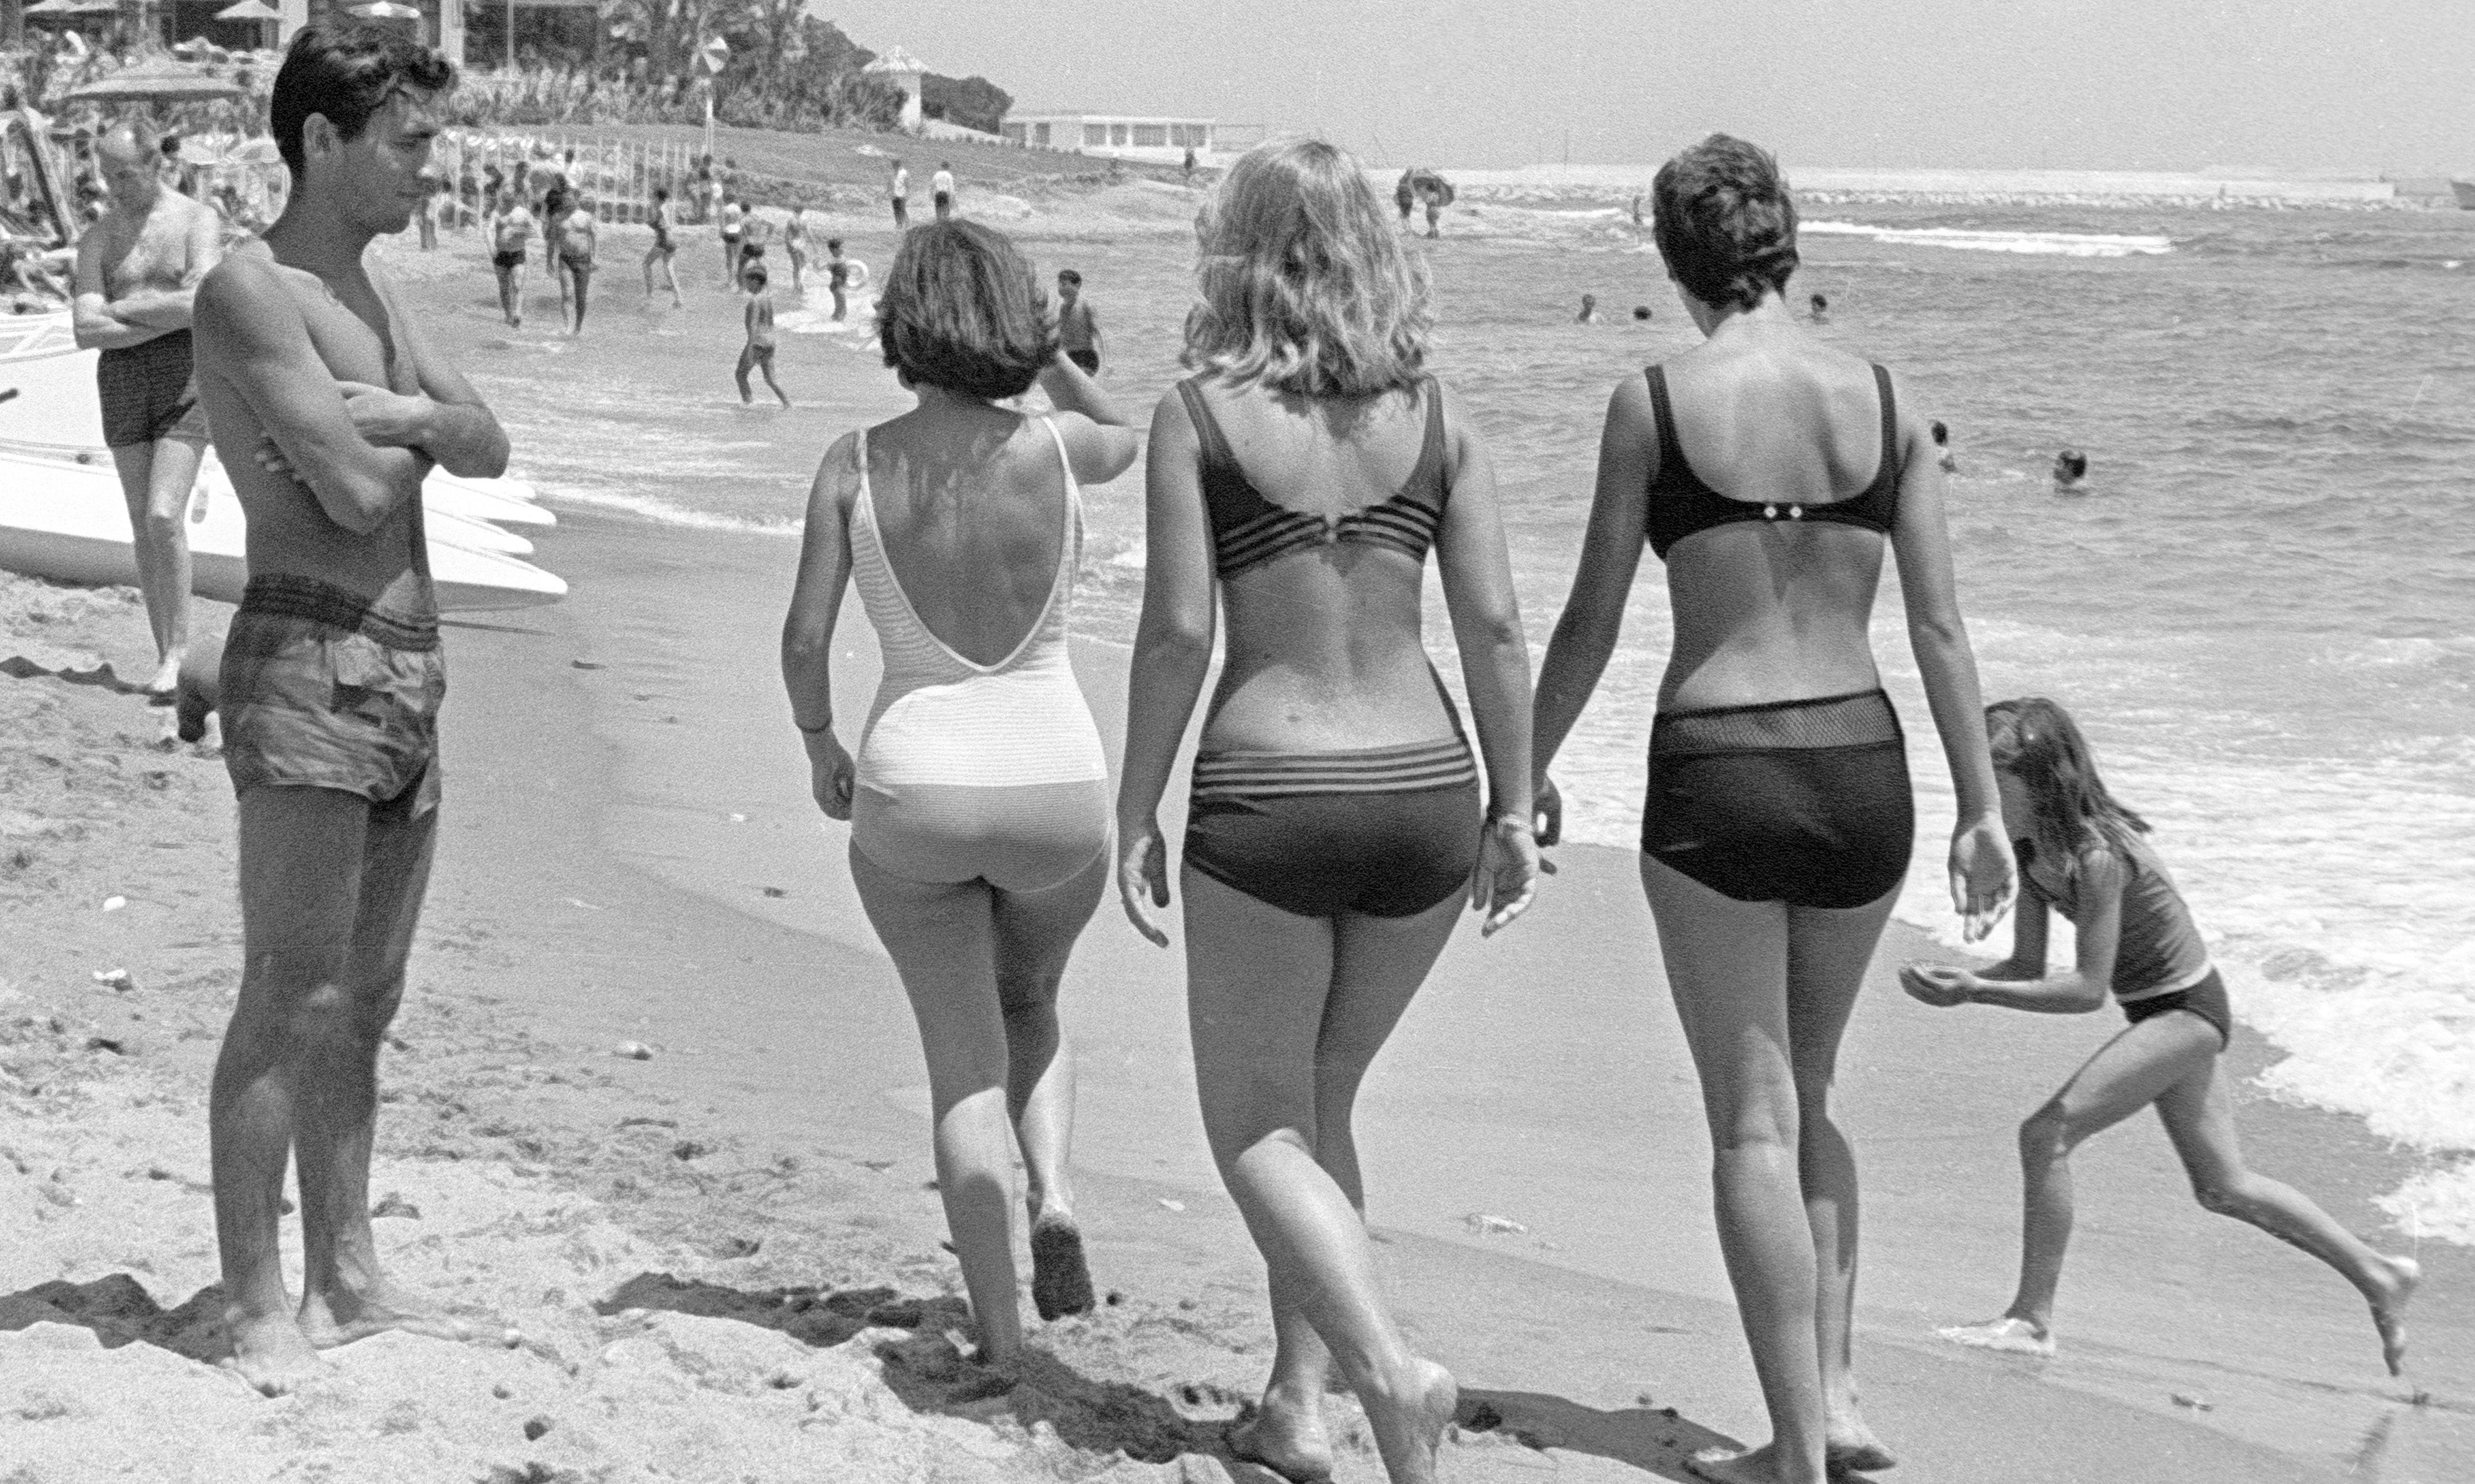 From the archive, 1978: Spain has a rethink about tourism